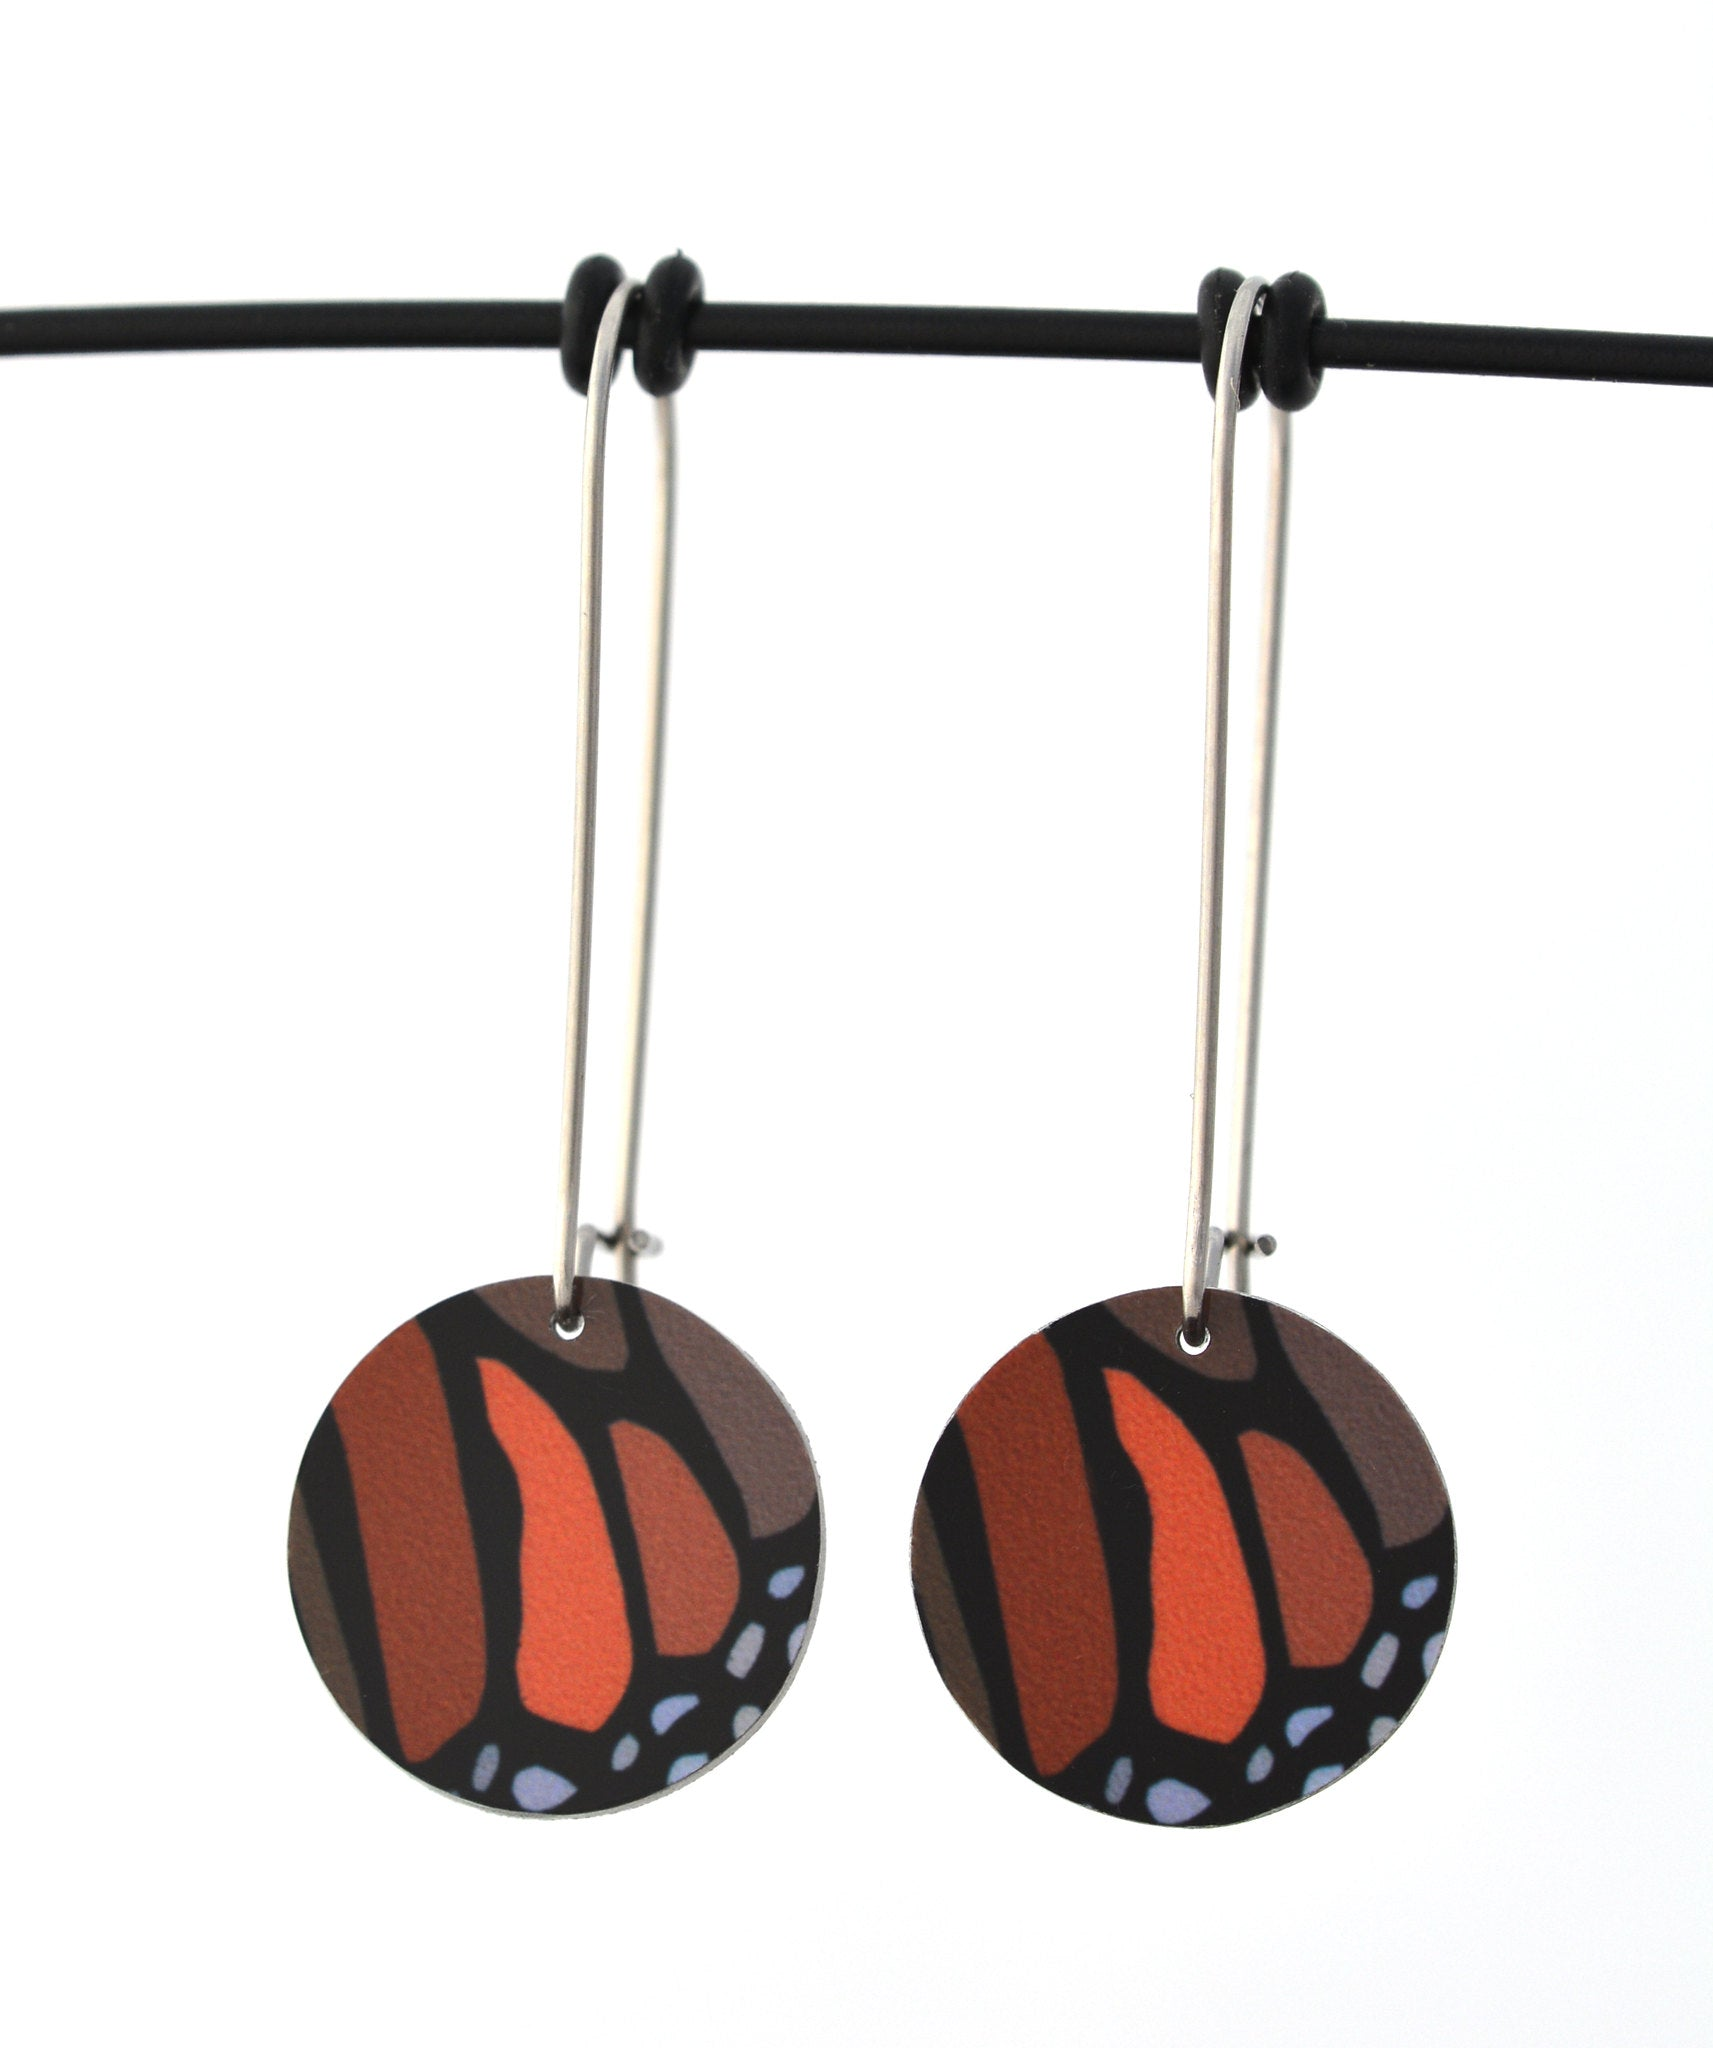 Circular earrings featuring the colours and shapes of a monarch butterfly wing. The aluminium earring discs are approximately 16mm in diameter and the surgical stainless steel drop hooks are 33mm long.